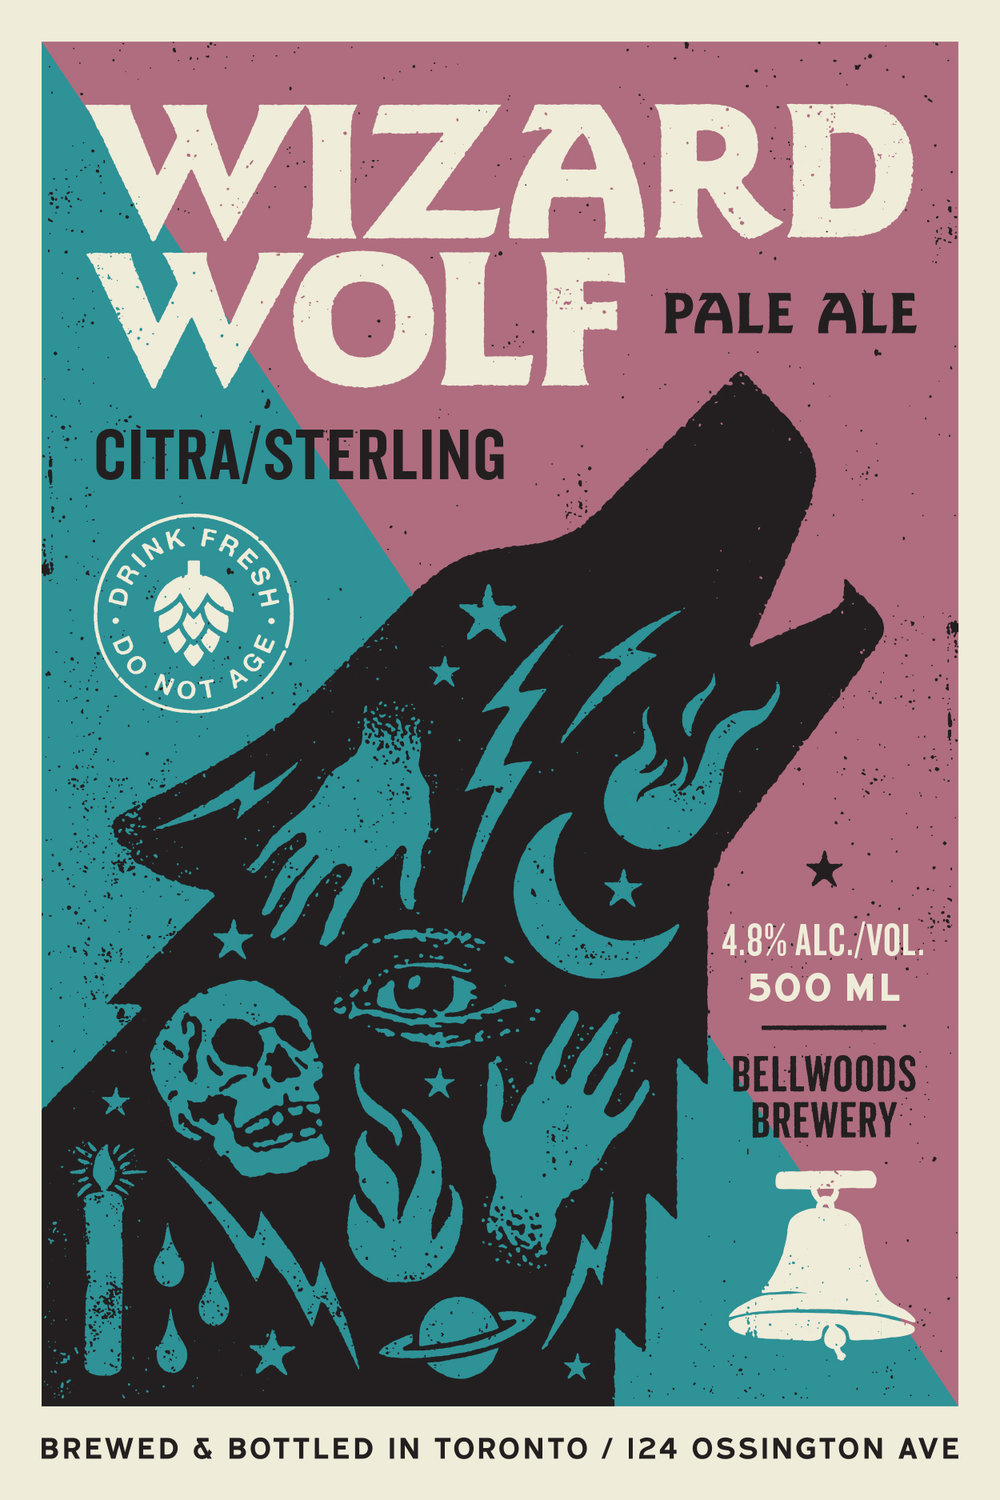 BellwoodsBrewery_WizardWolf_CitraSterling.jpg